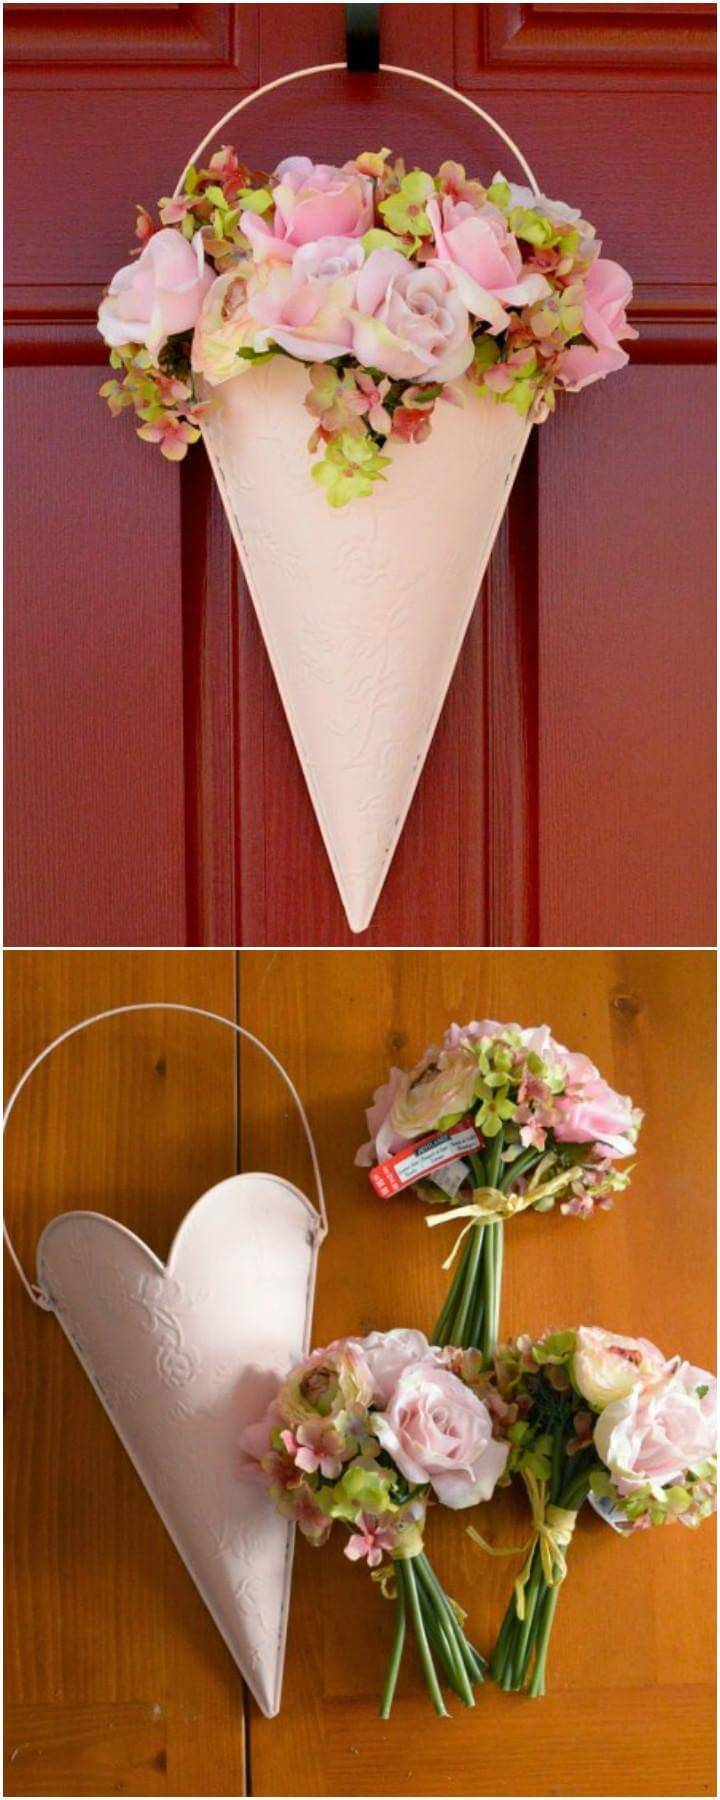 DIY Floral Front Door Hanging Decor